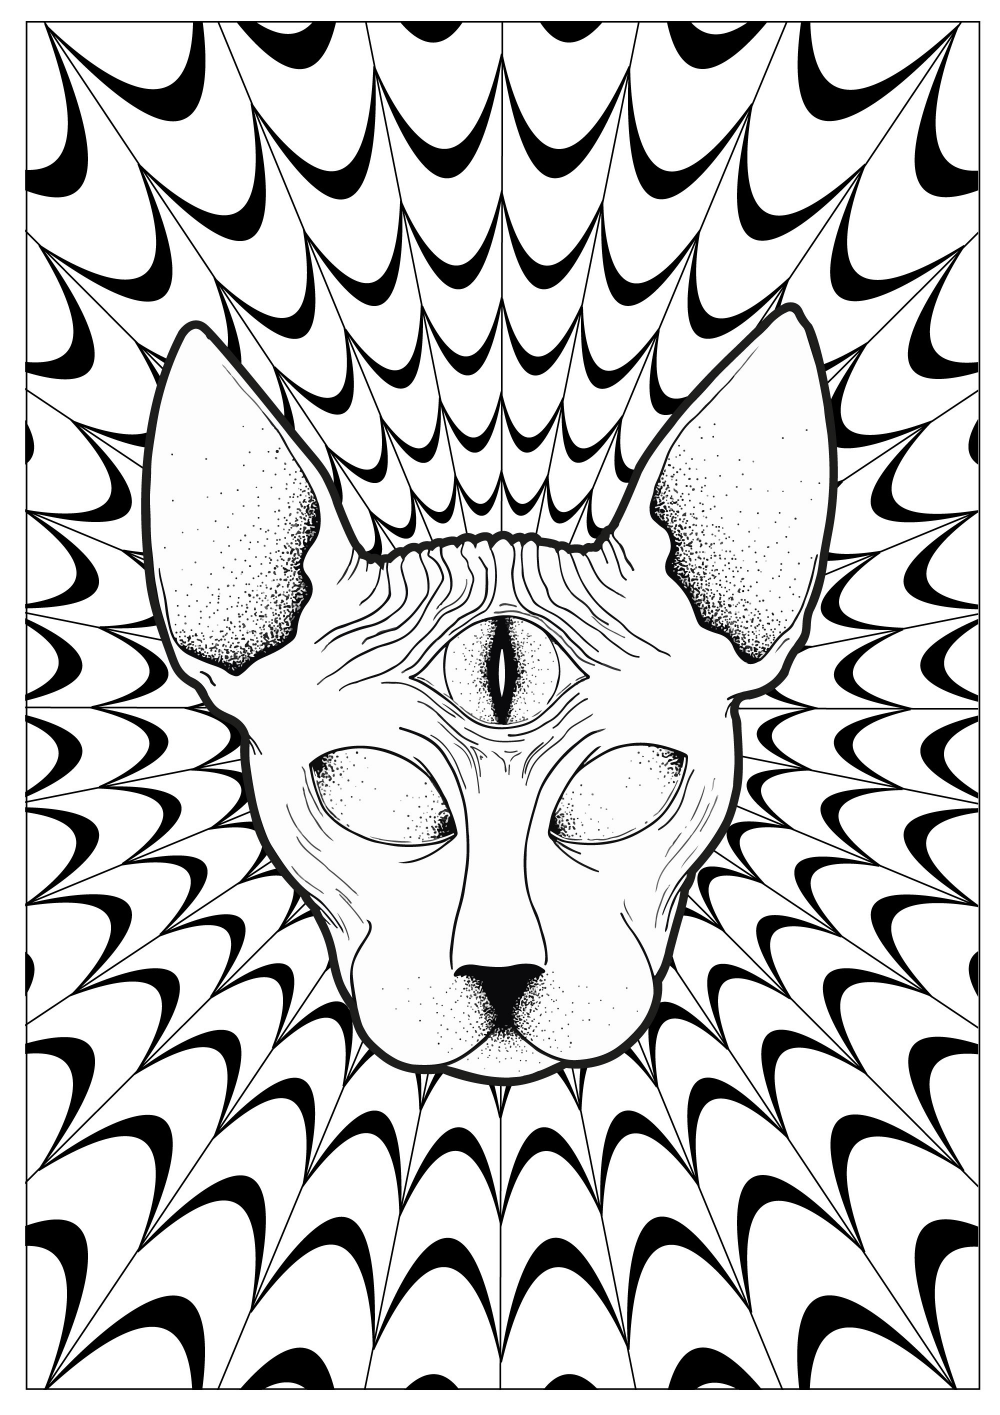 Trippy Coloring Pages Aesthetic Google Search In 2020 Animal Coloring Pages Trippy Drawings Cool Coloring Pages